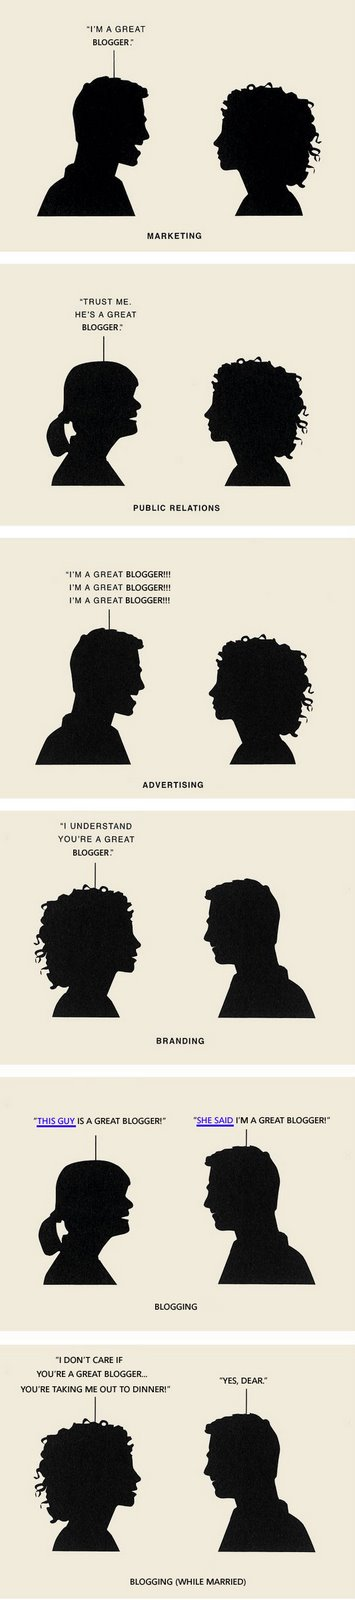 marketing-vs-comunicacion.jpg